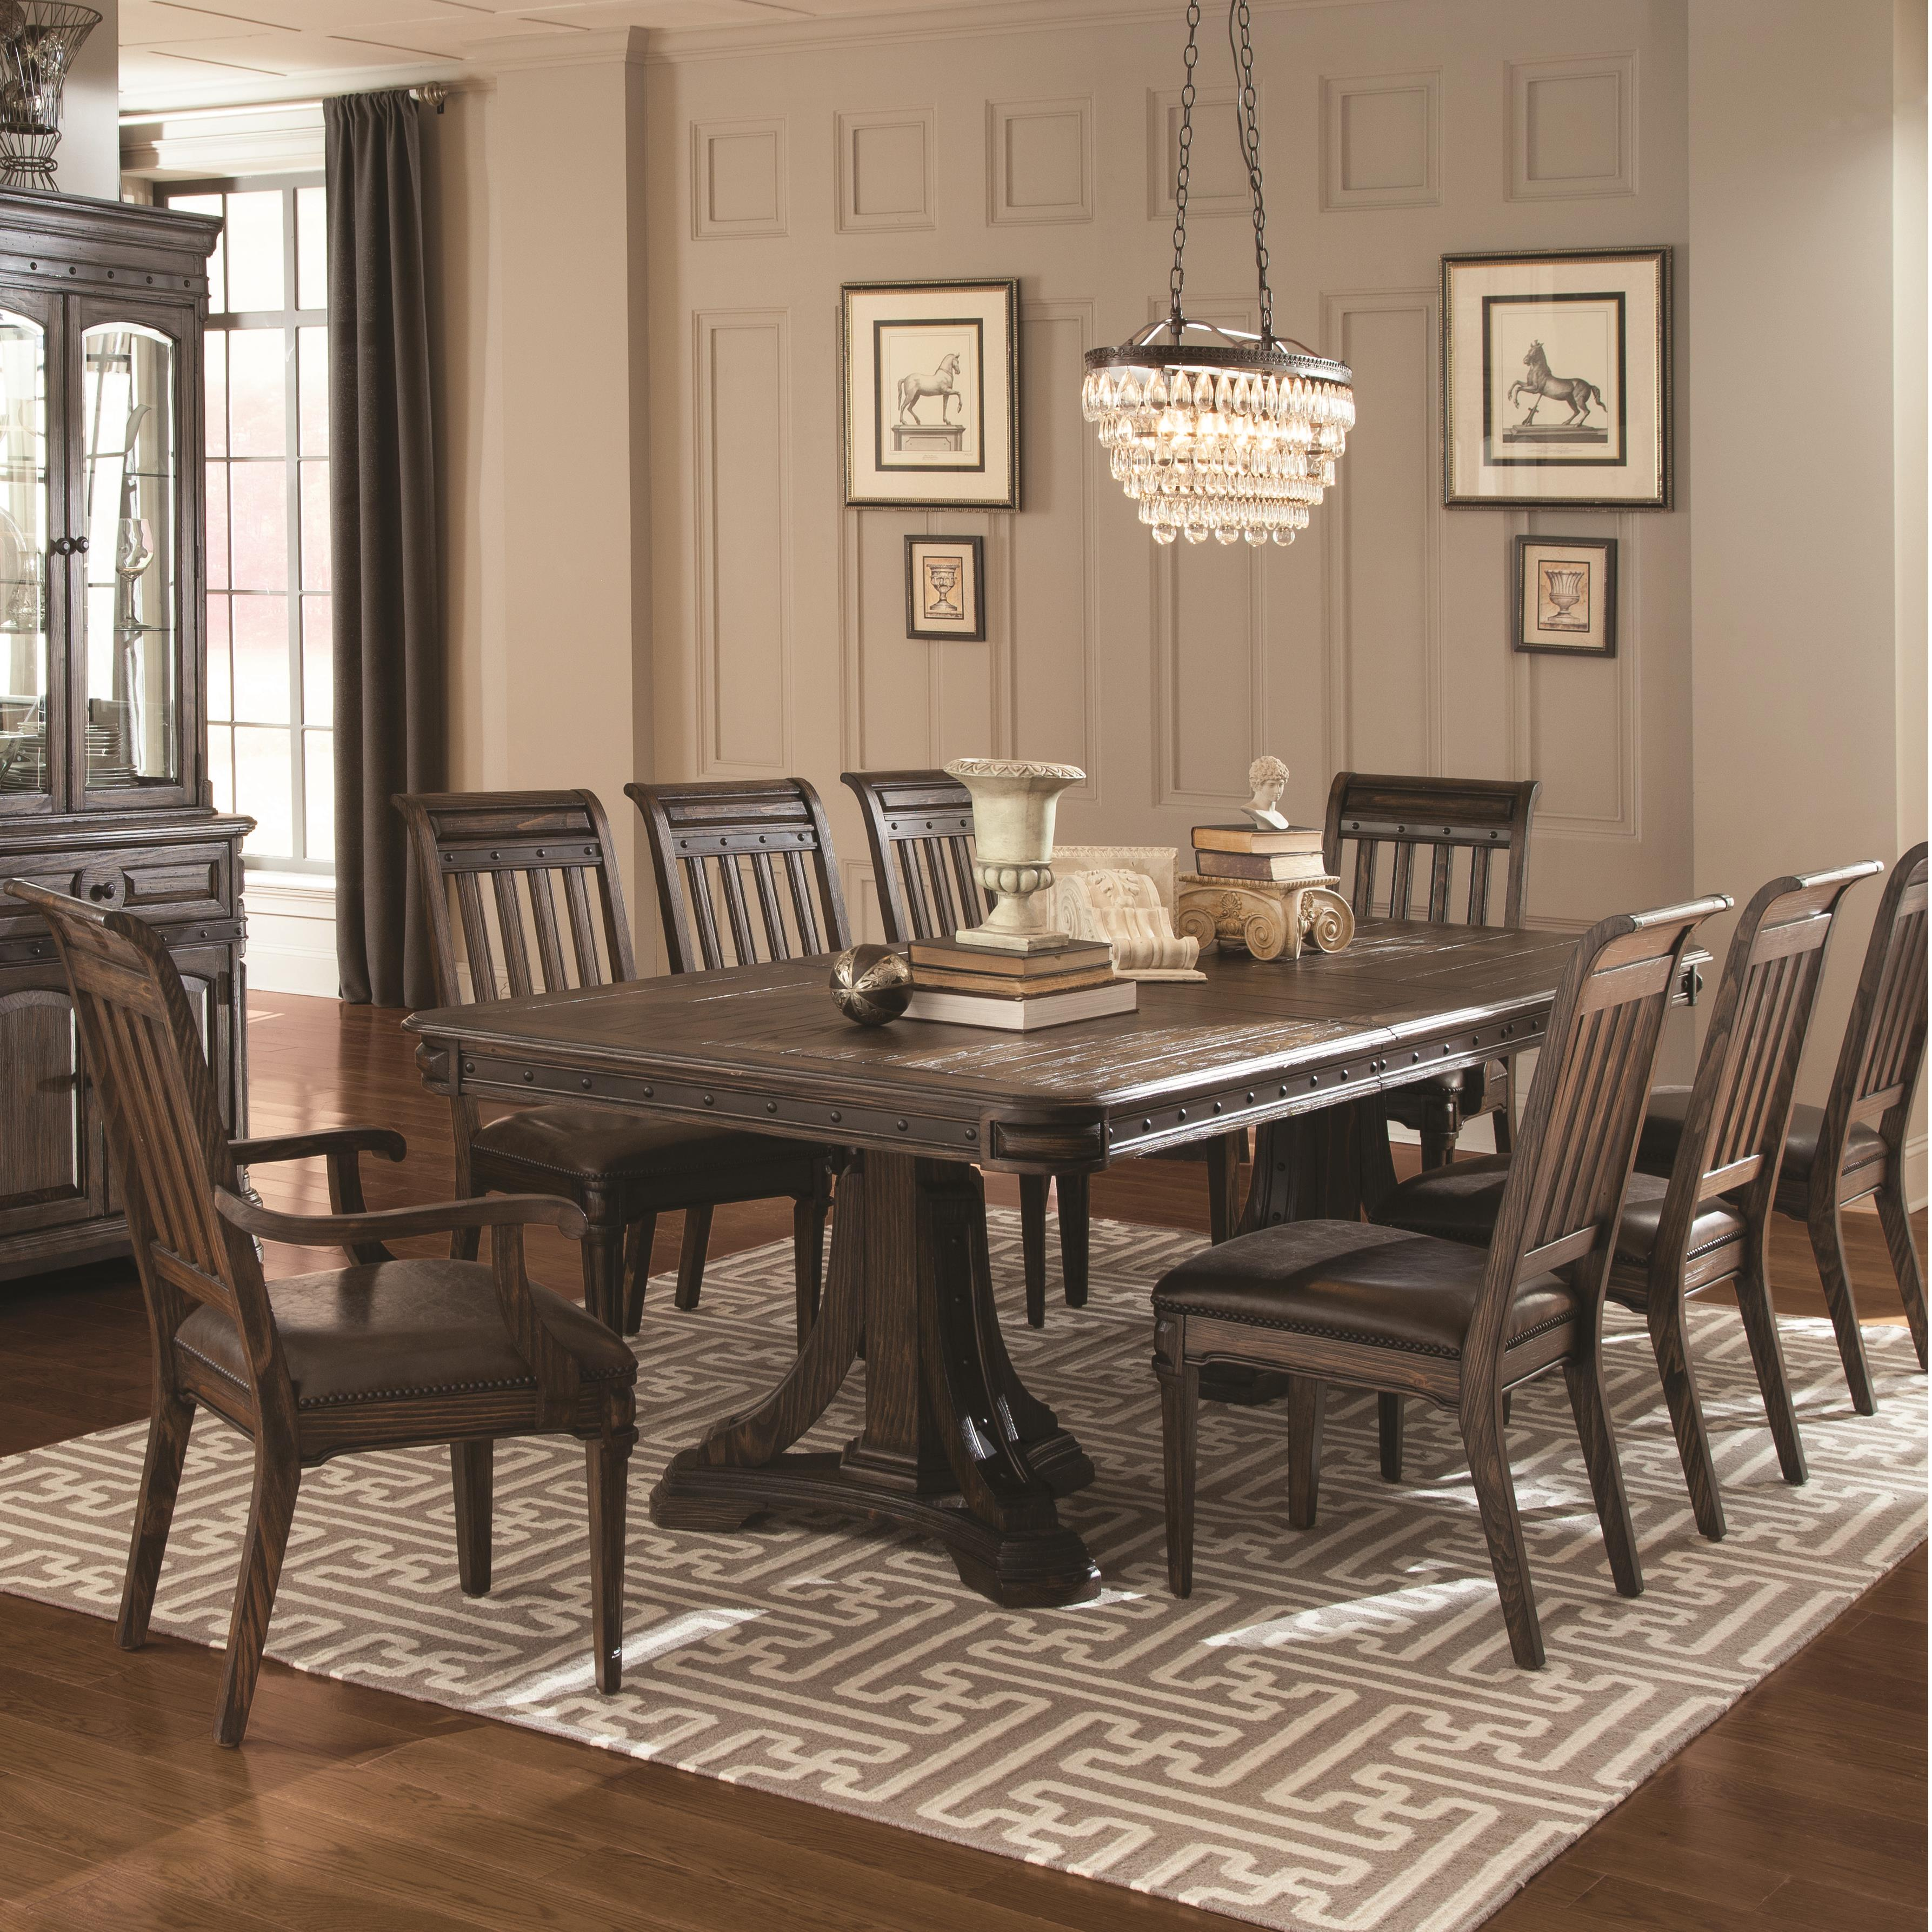 Dining Room Furniture - Furniture and More Texas